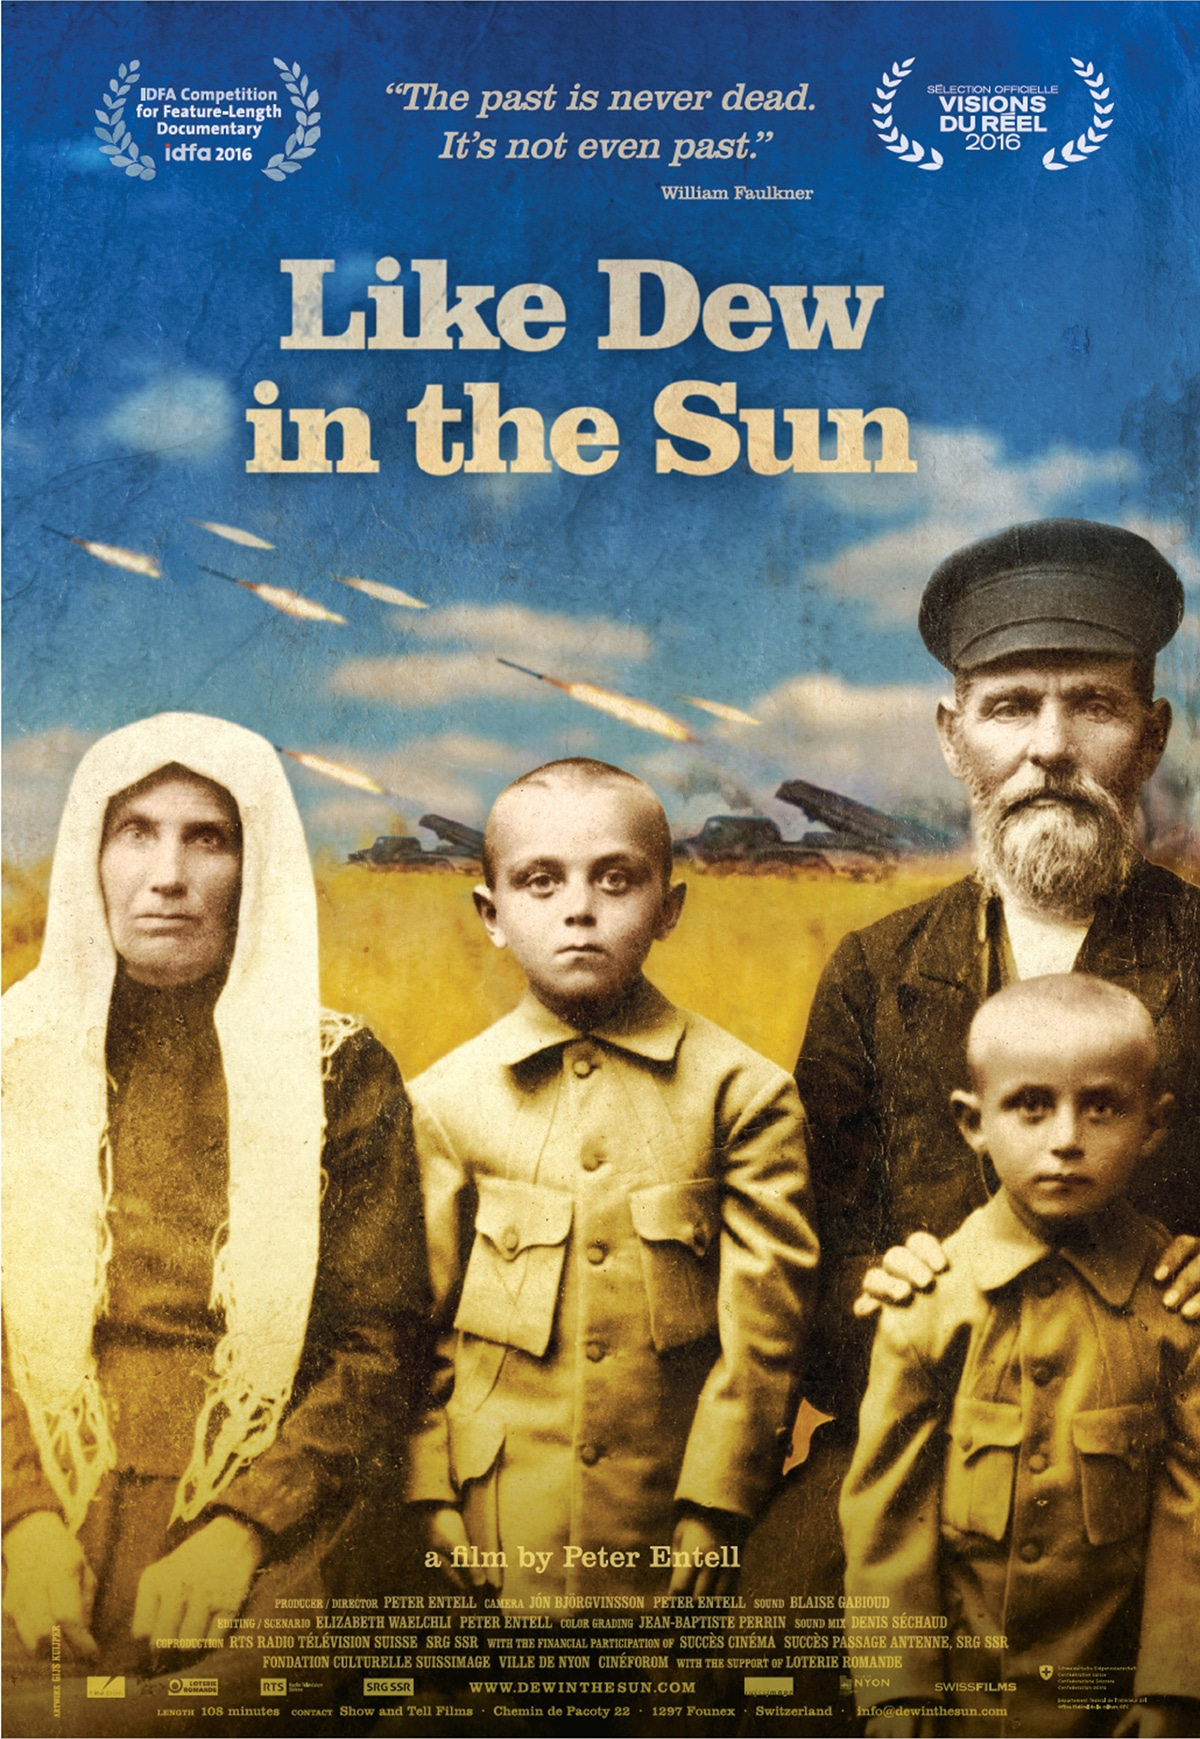 Like dew in the sunun film de Peter Entell (2016)Show and Tell Films BANDE ANNONCE